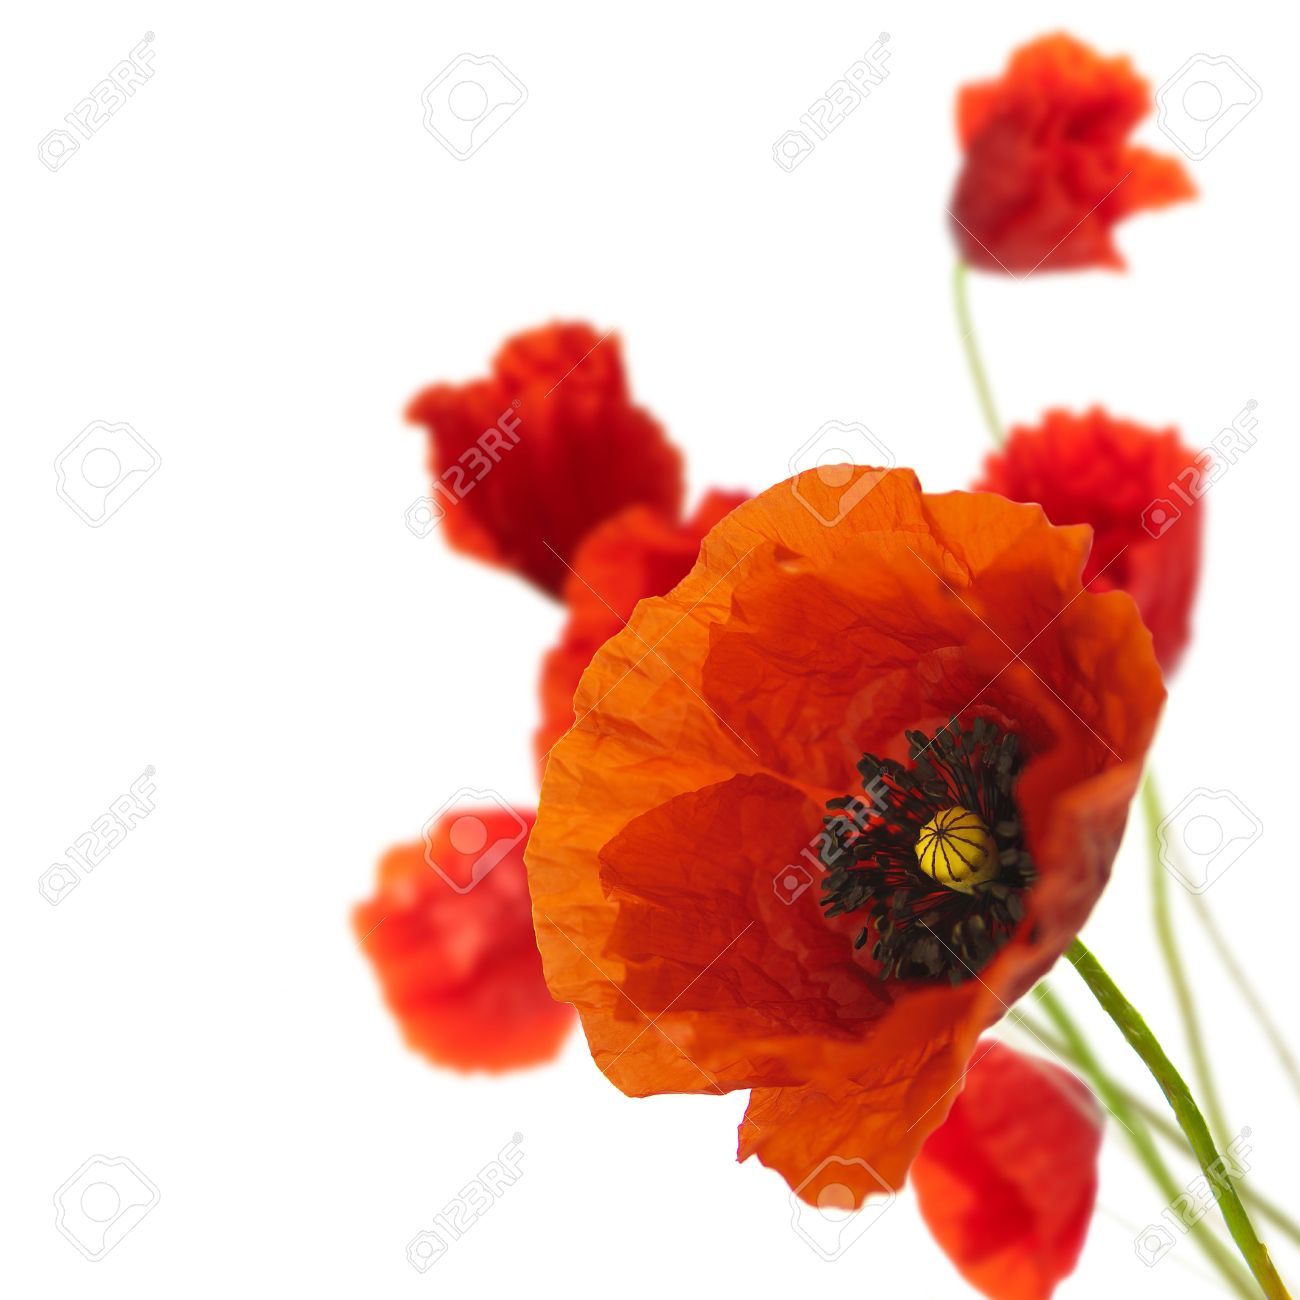 red poppies isolated on a white background in the corner of a page - Floral border Stock Photo - 5393368